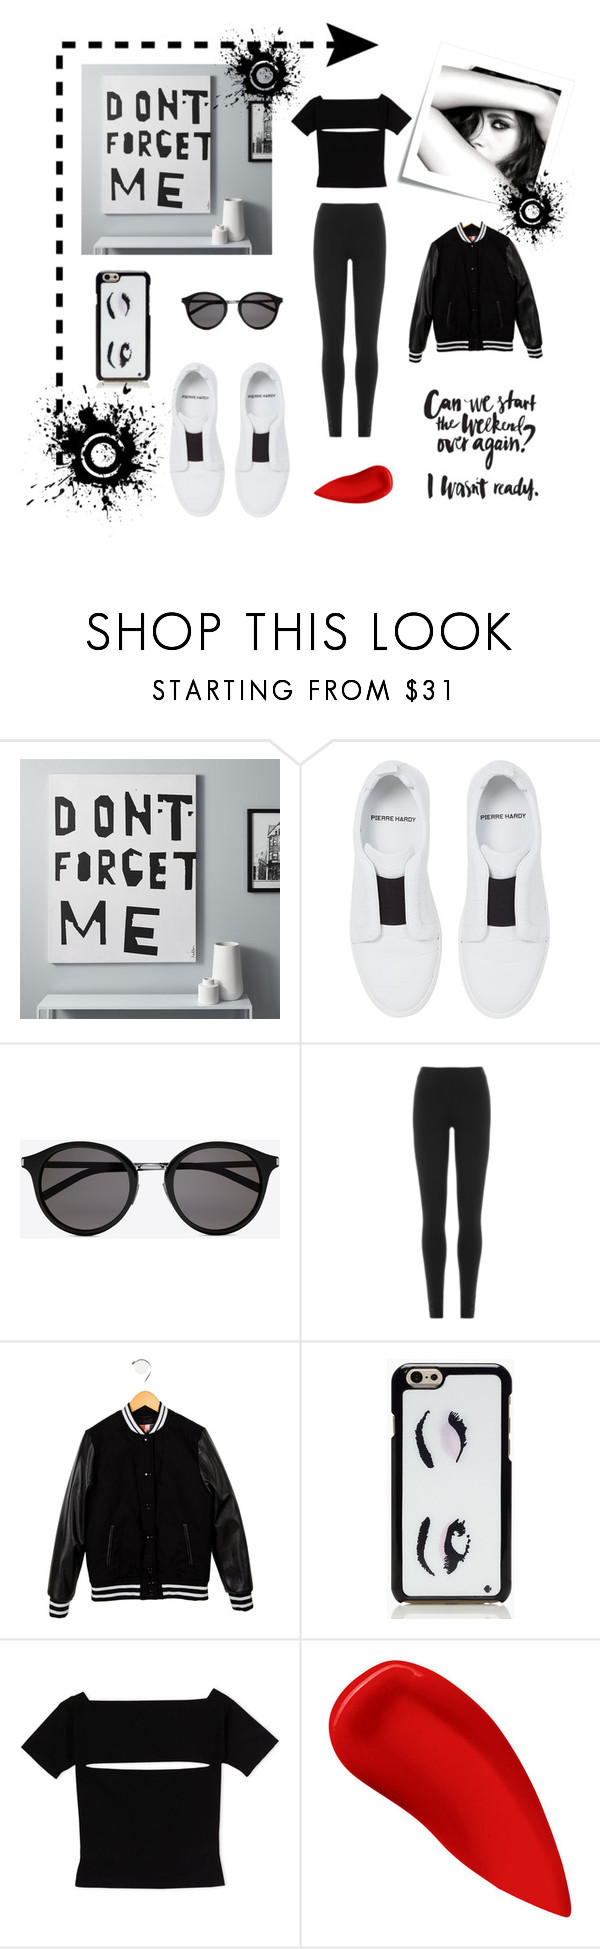 """""""Untitled #11"""" by faigylefkowitz ❤ liked on Polyvore featuring CB2, Pierre Hardy, Yves Saint Laurent, DKNY, MSGM, Kate Spade, Post-It, T By Alexander Wang, Lipstick Queen and Chanel"""